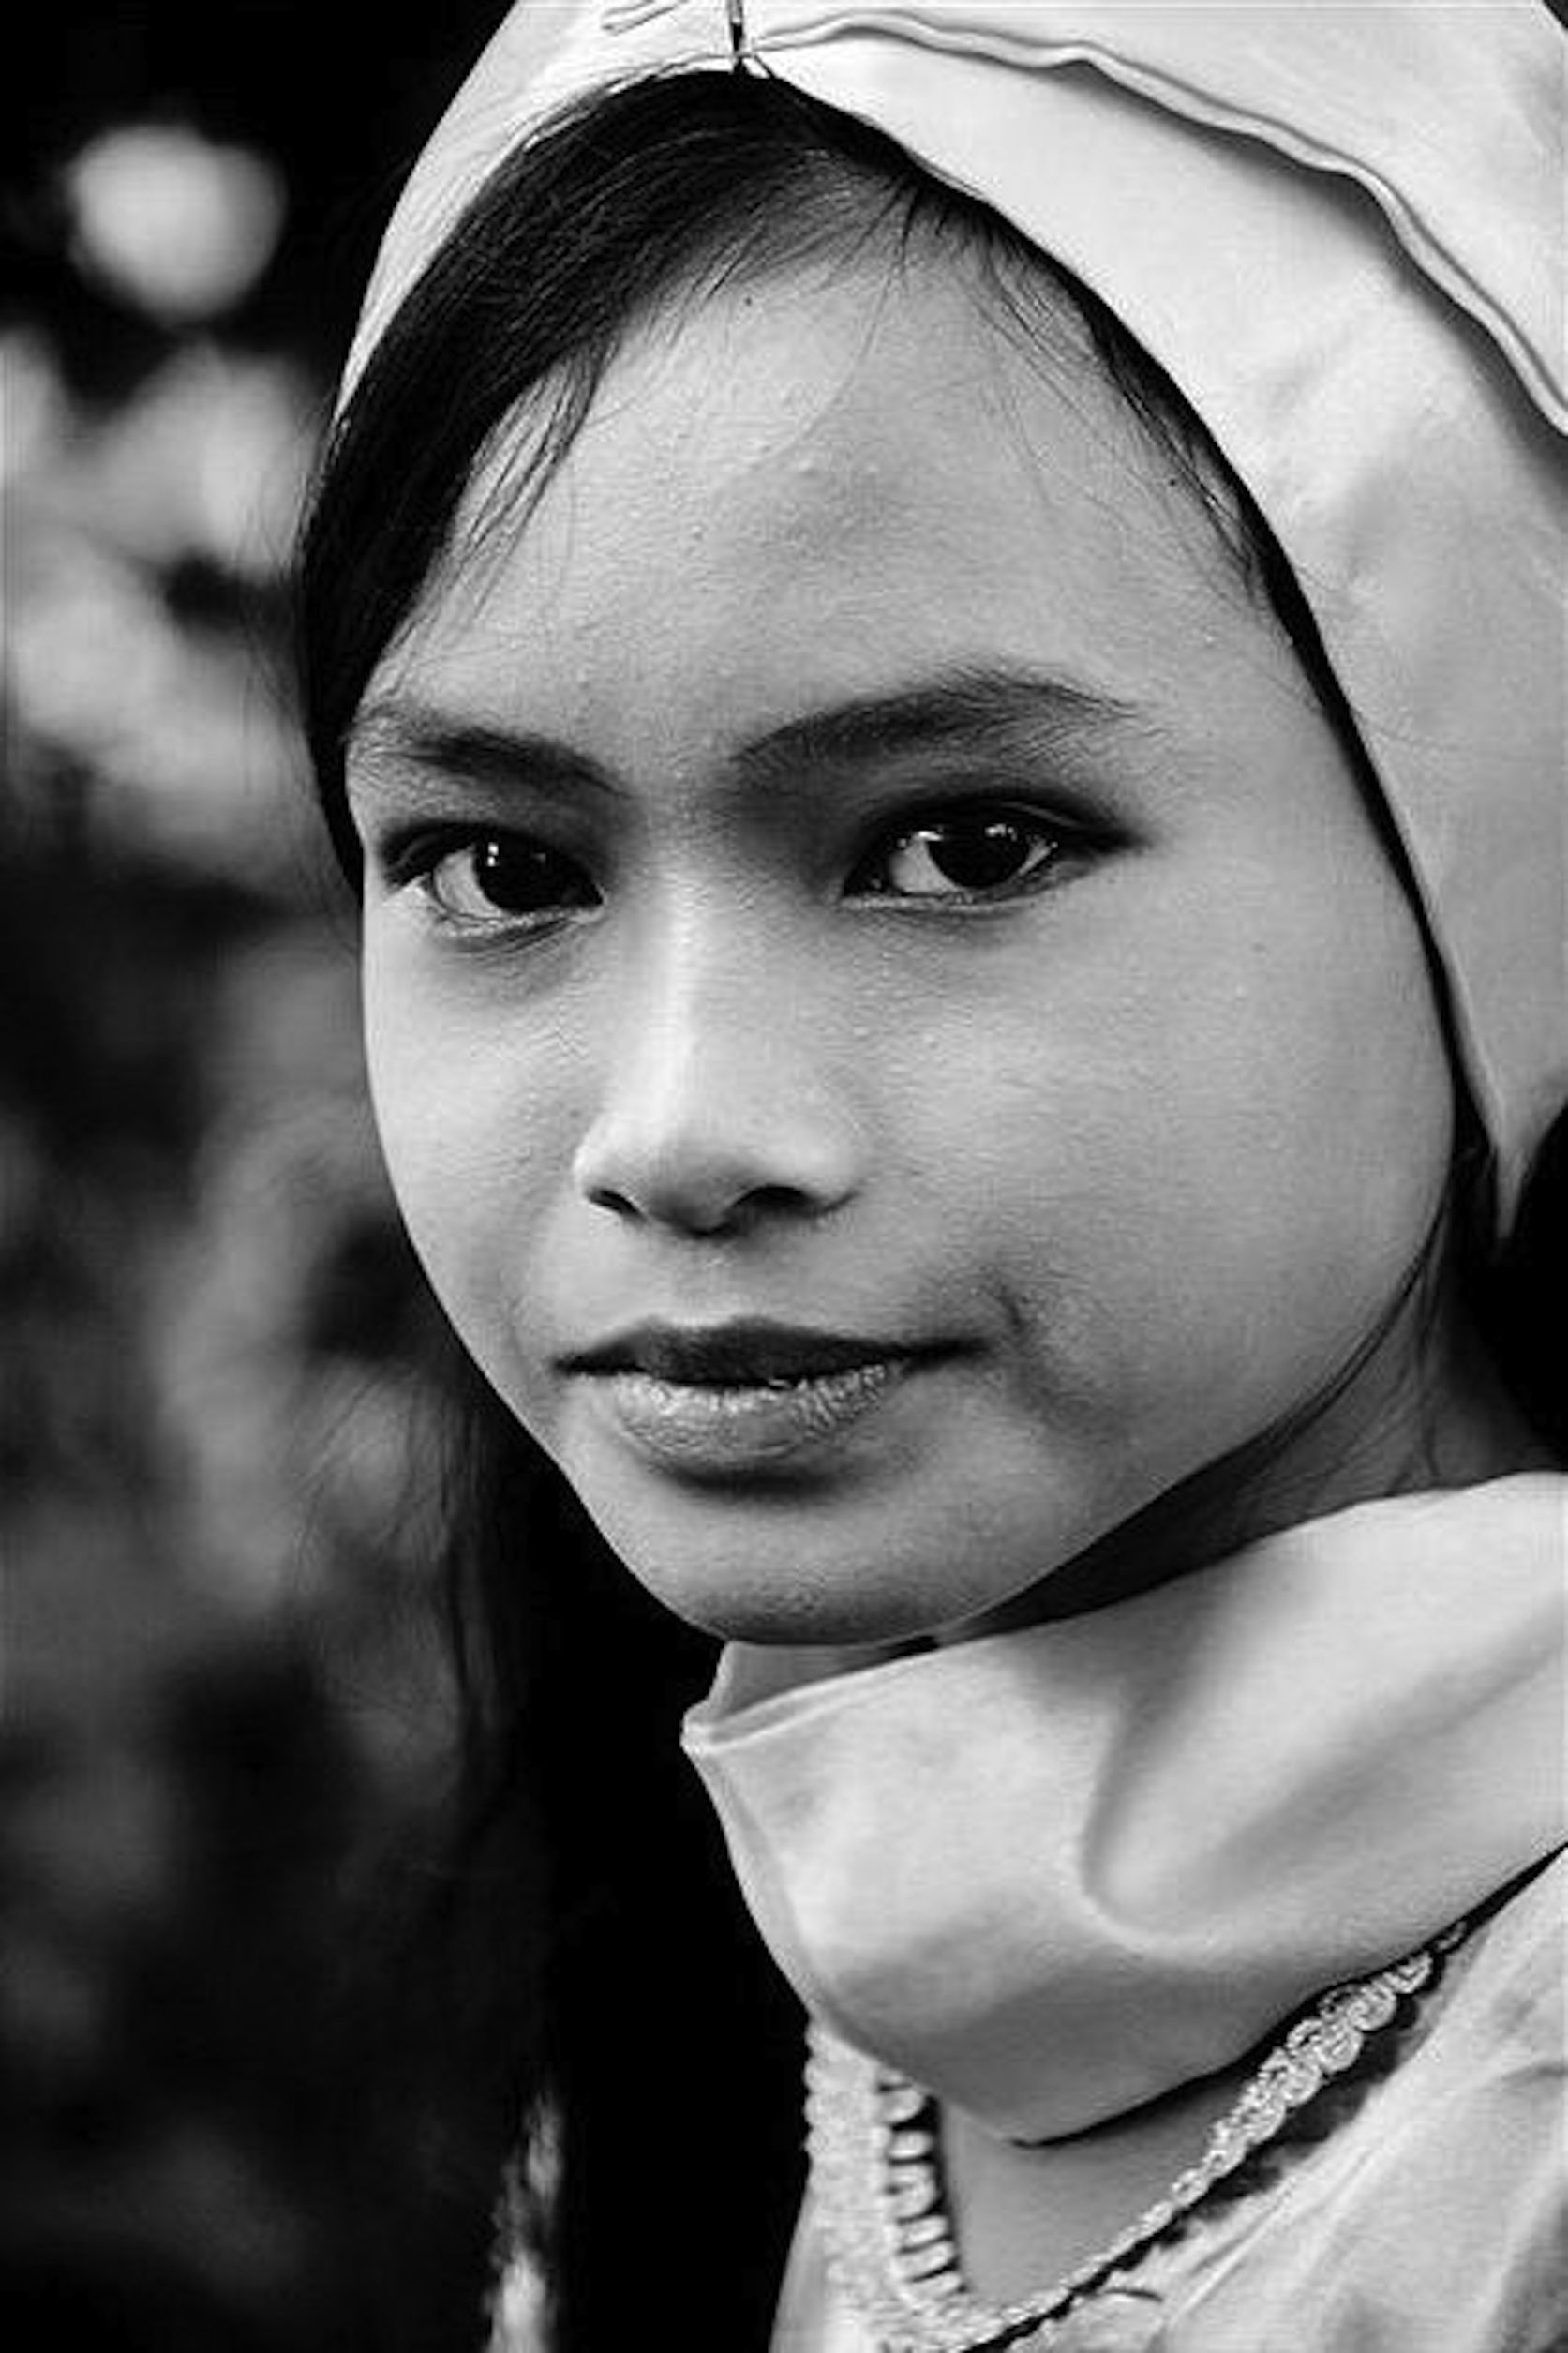 Indonesian beauty Face, Beauty around the world, People